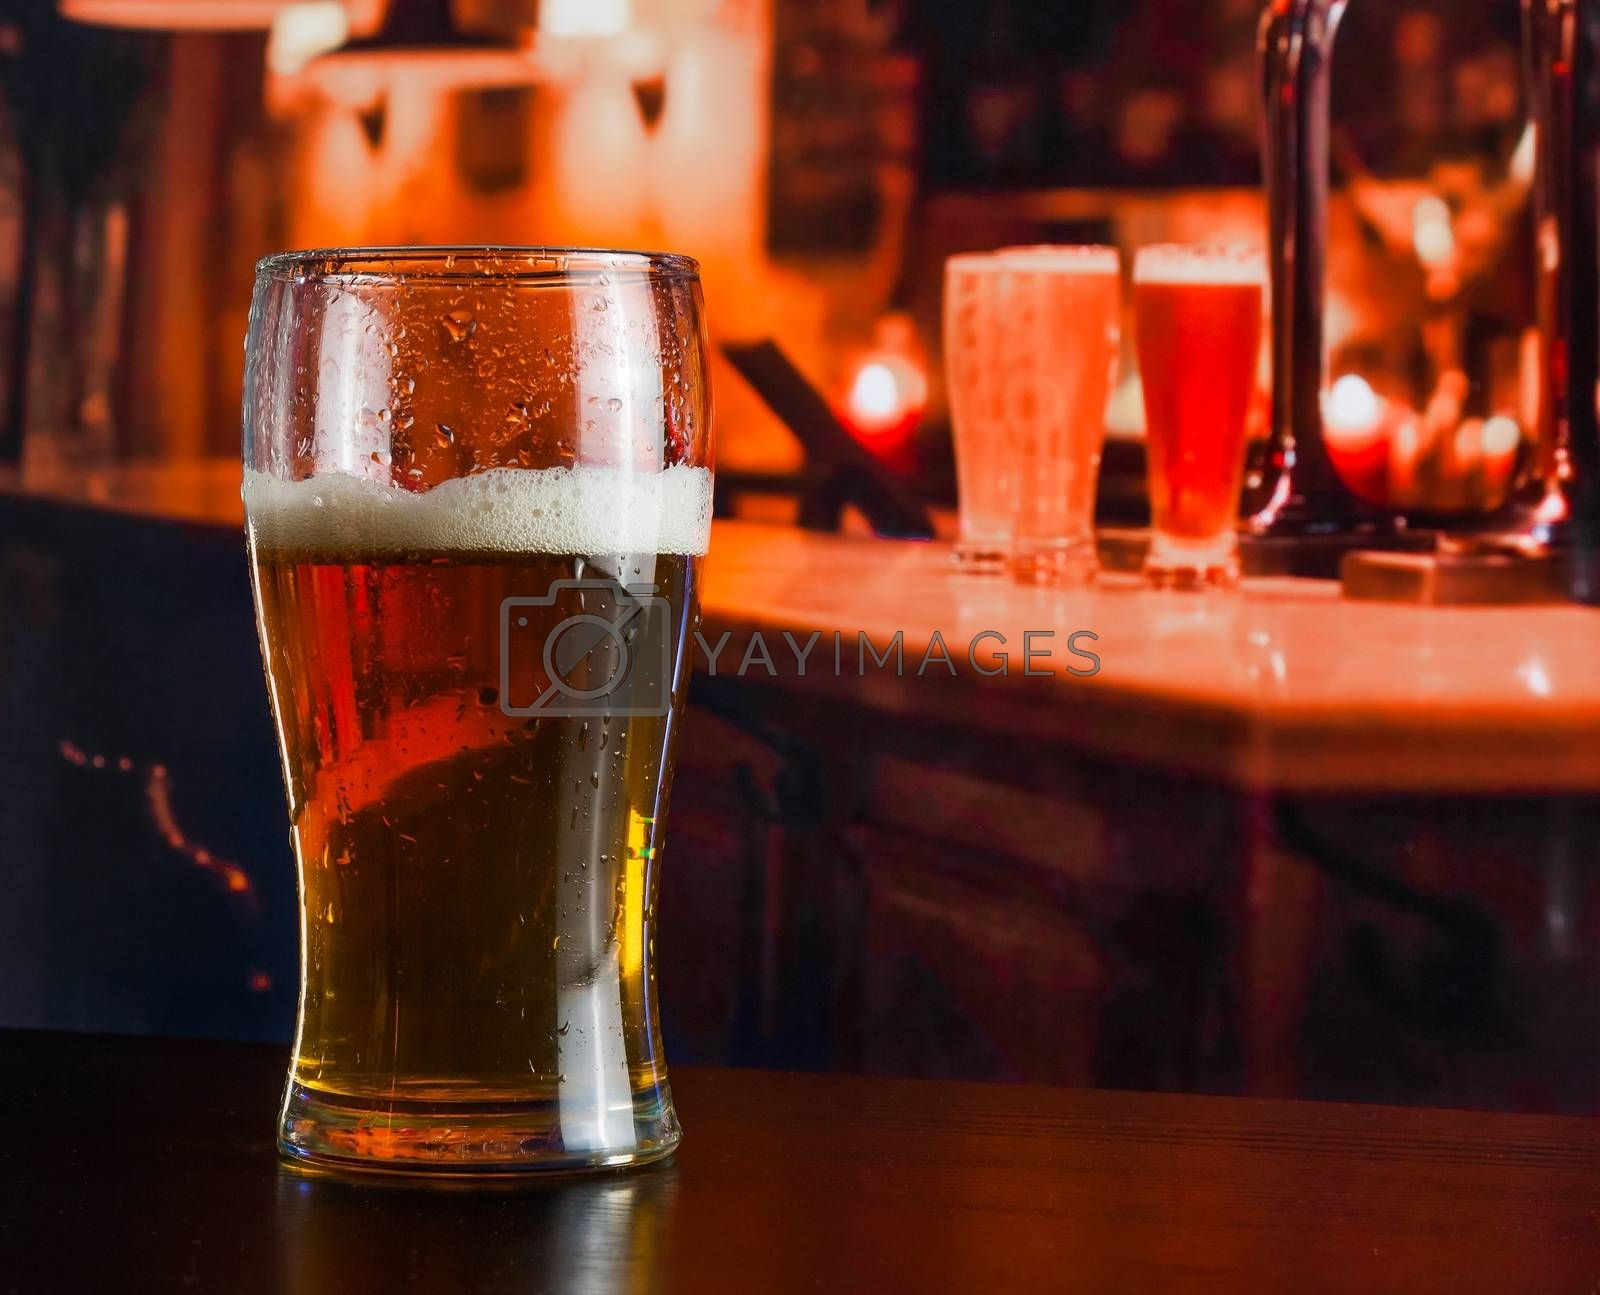 Glass of fresh beer on wood table  by donfiore